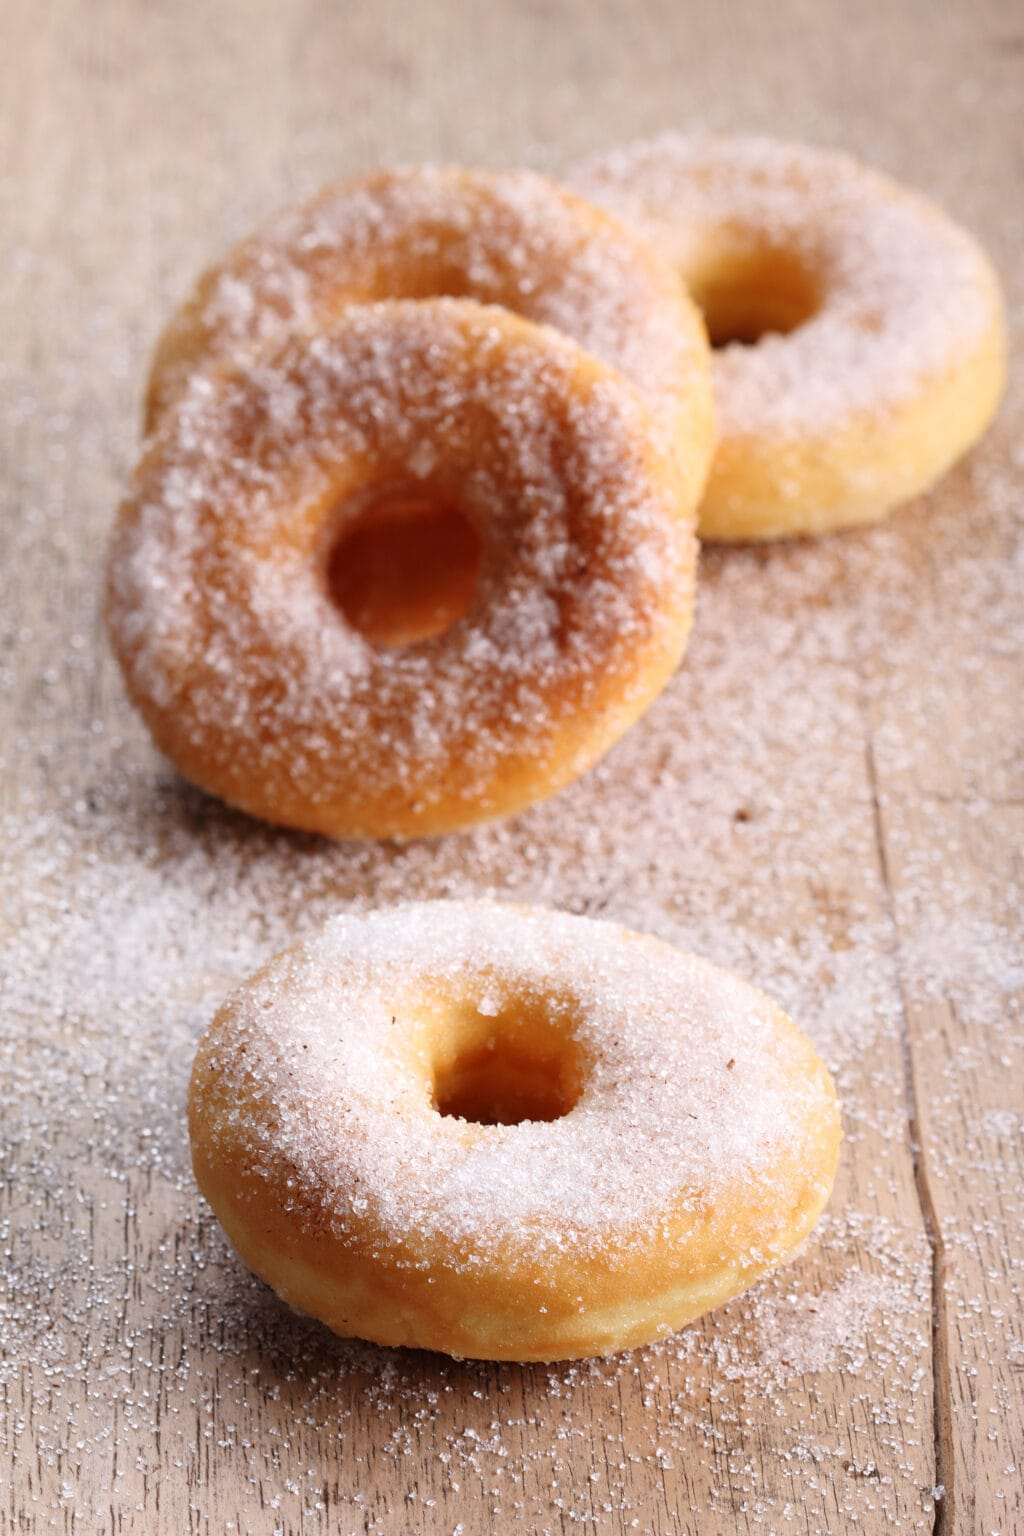 canned biscuit donuts covered in cinnamon and sugar